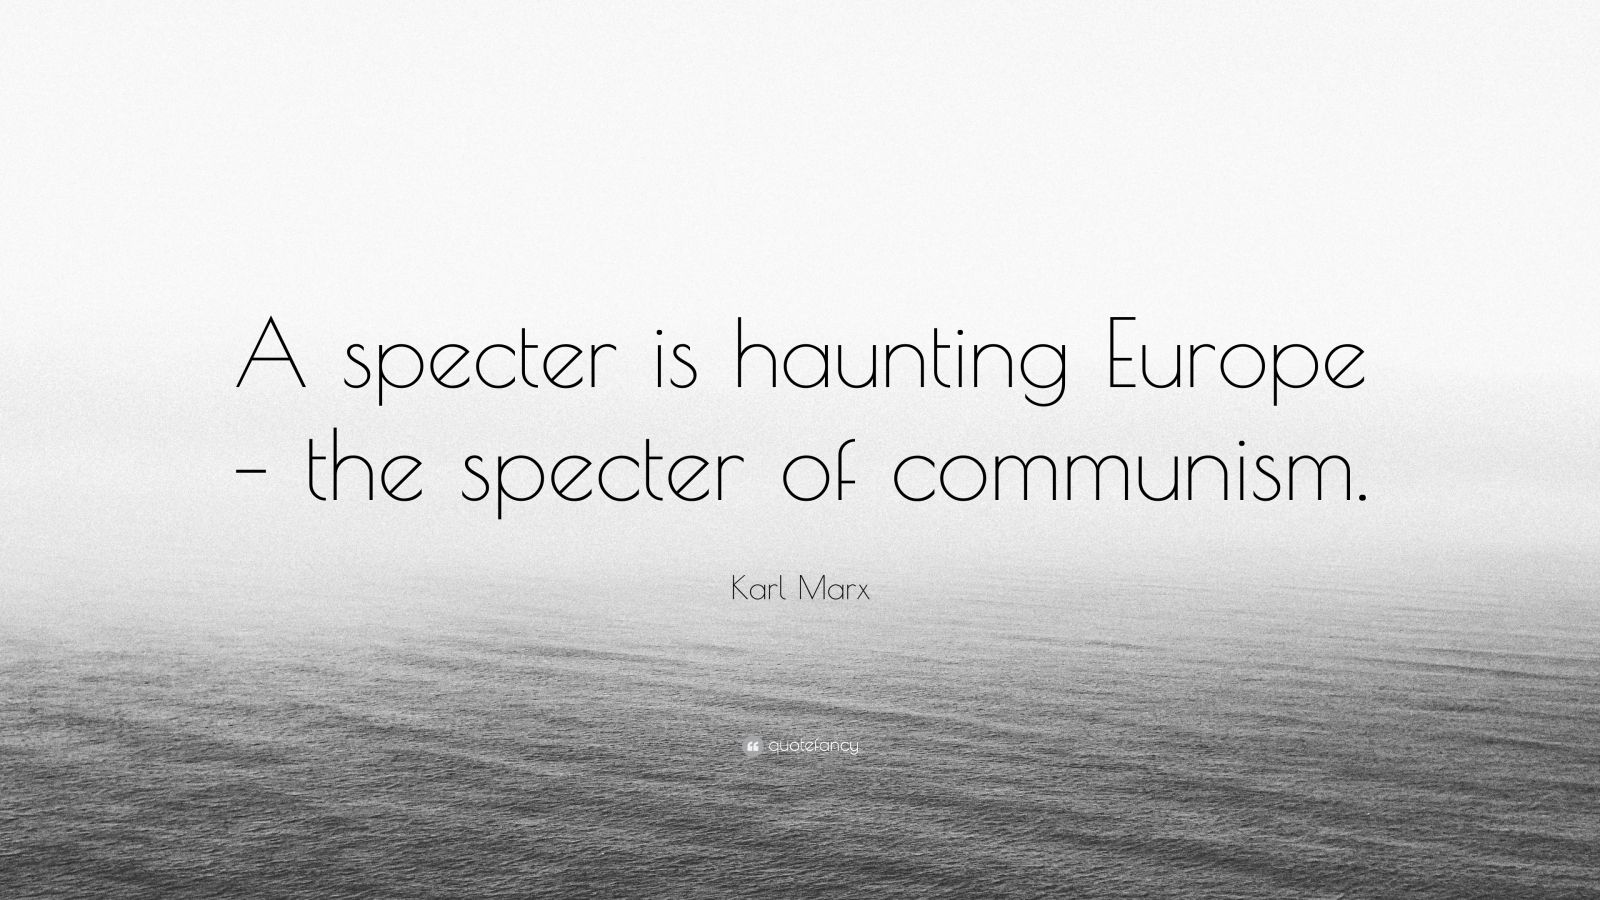 "an analysis of the haunting of europe and the specter of communism during the 19th century Thomas picketty - capital in the twenty-first ""a specter is haunting europe, the specter of communism you had extreme inequality in the 19th century."